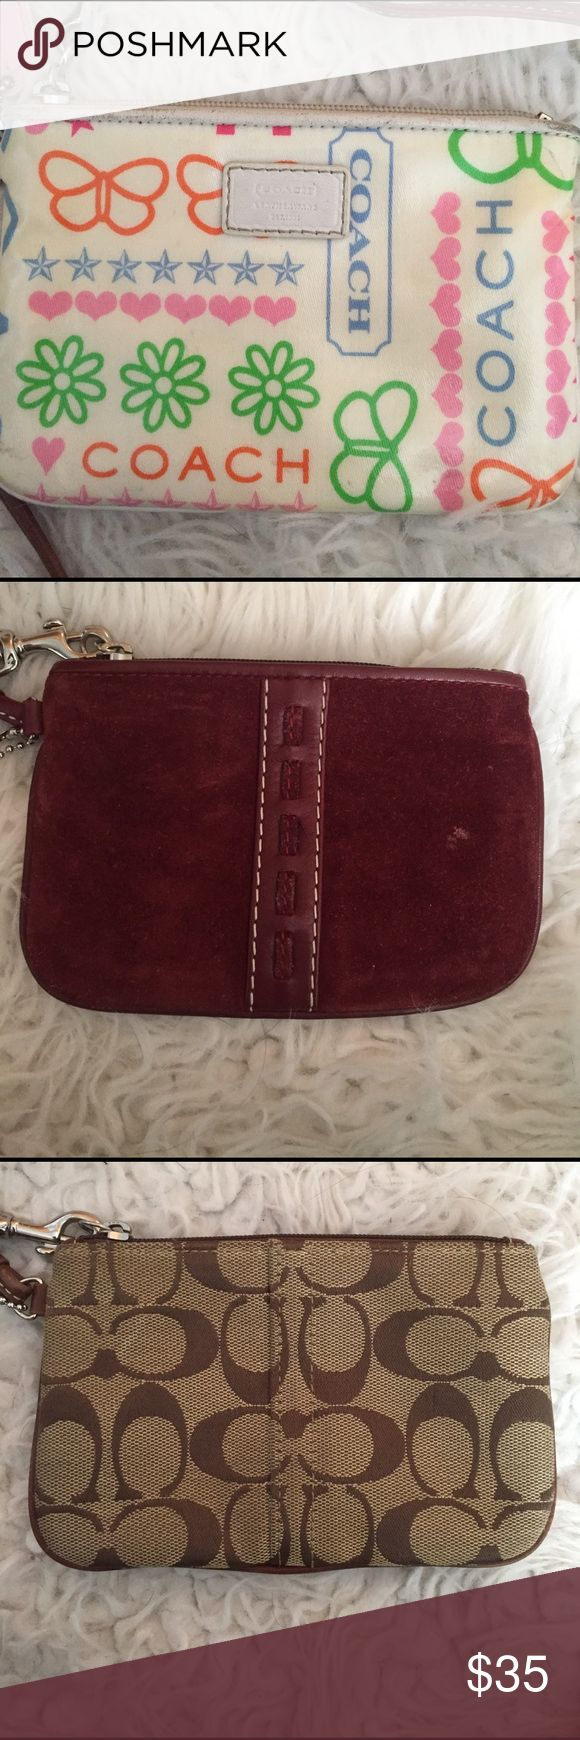 Small Coach wristlets.. Small white print Coach wristlet. Small maroon Coach wristlet. Small tan and brown Coach wristlet. All authentic. PERFECT size for little girls. $35.00 each or all three for $100.00. Coach Bags Clutches & Wristlets